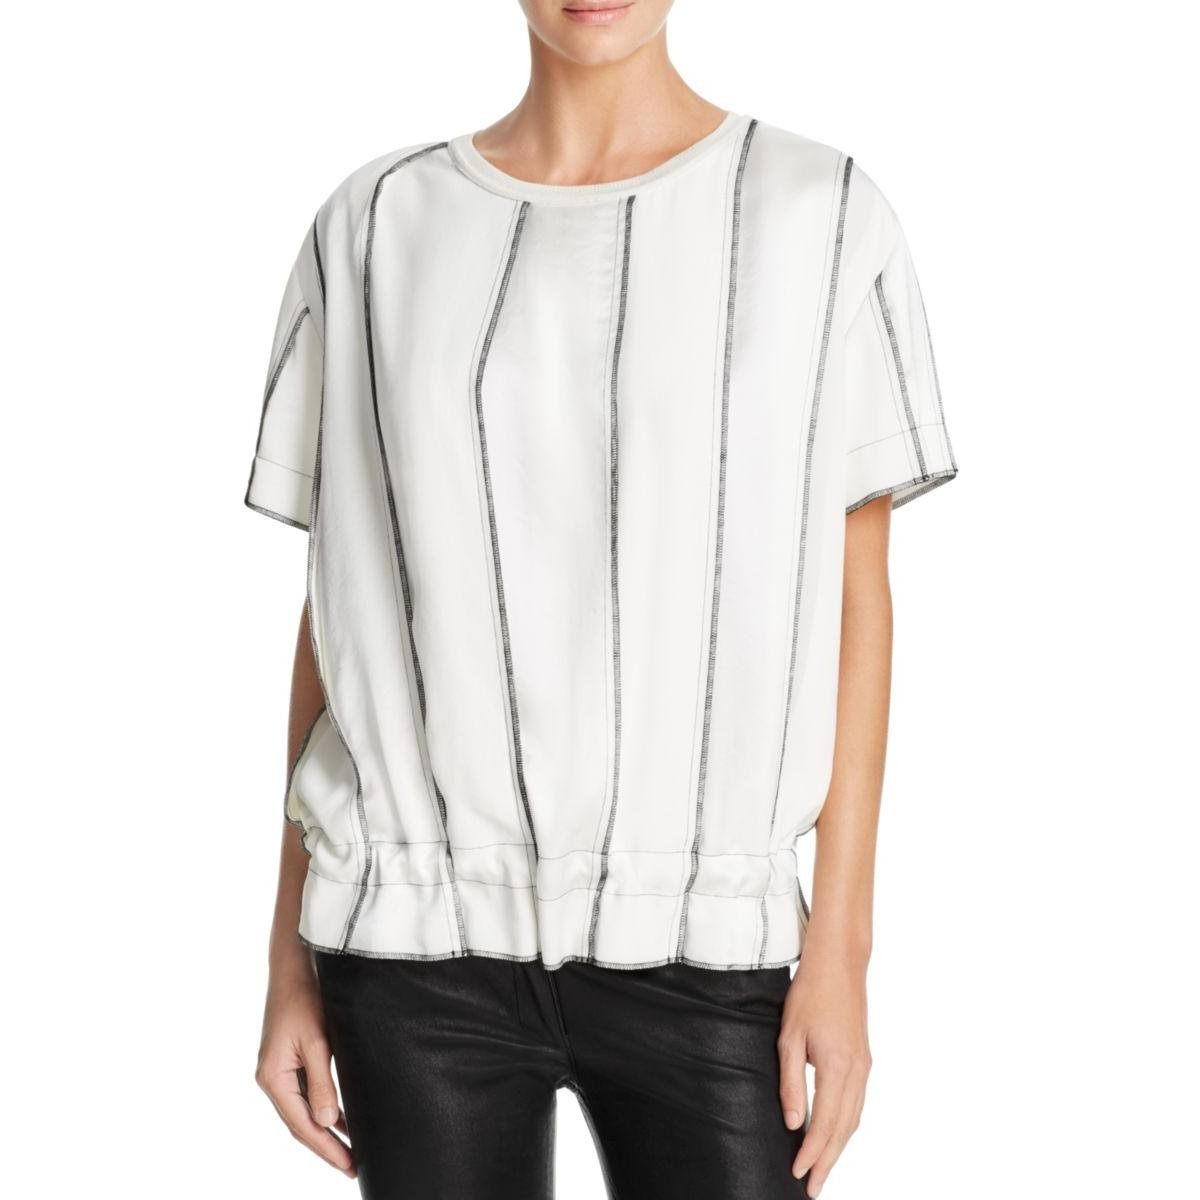 DKNY Womens Short Sleeve Panelled Casual Top Black-Ivory S